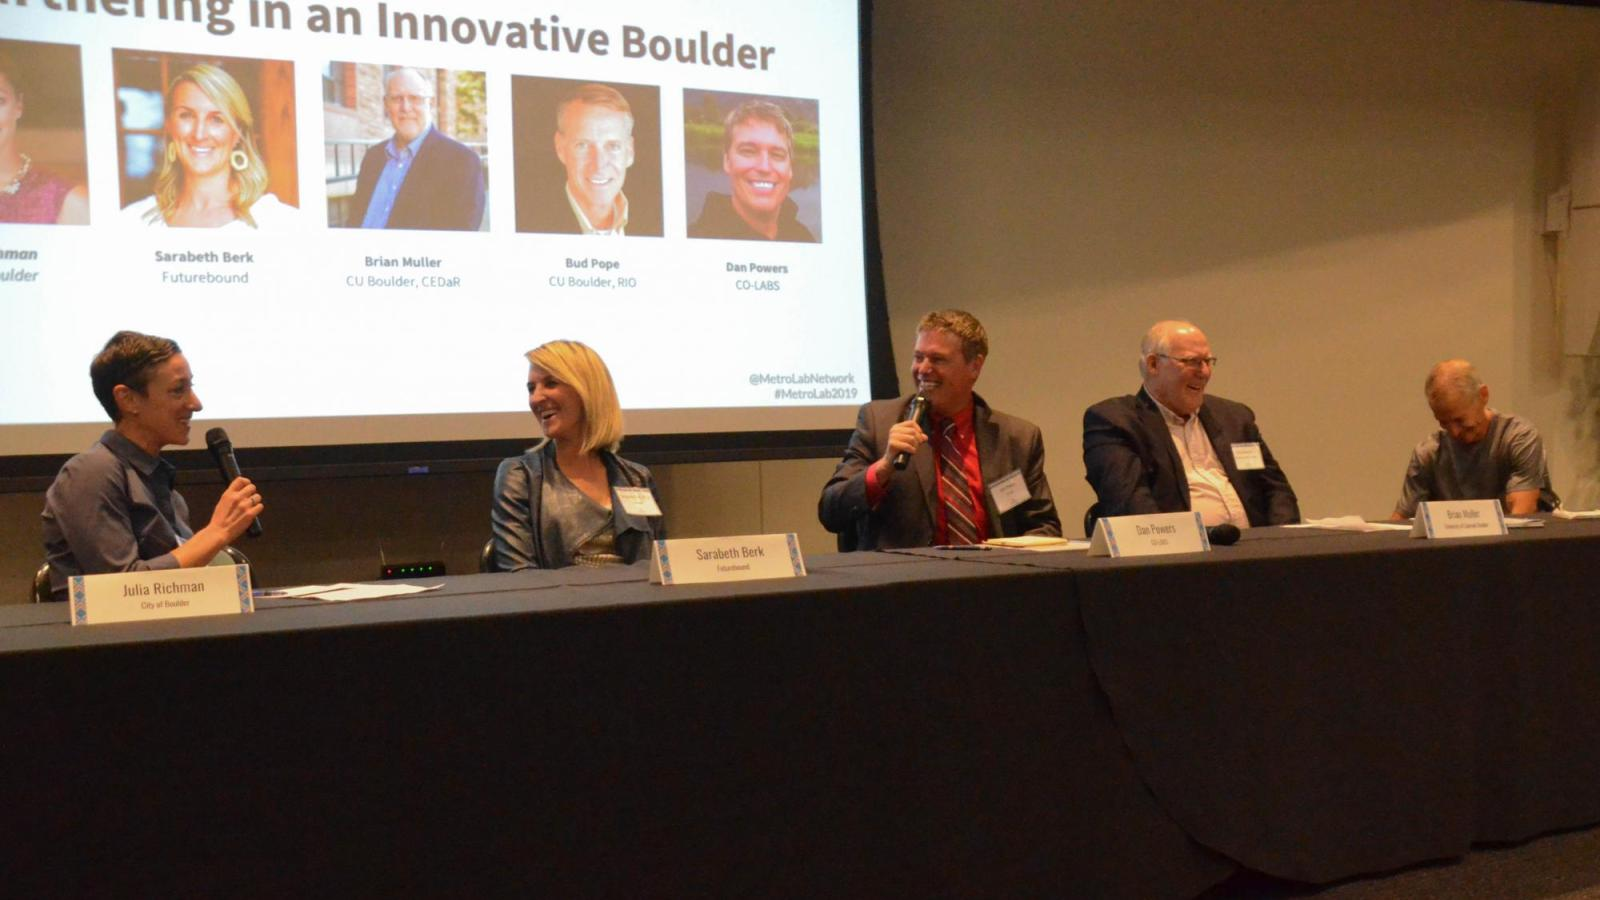 The panel reacts during a funny moment in the Partnering in an Innovative Boulder